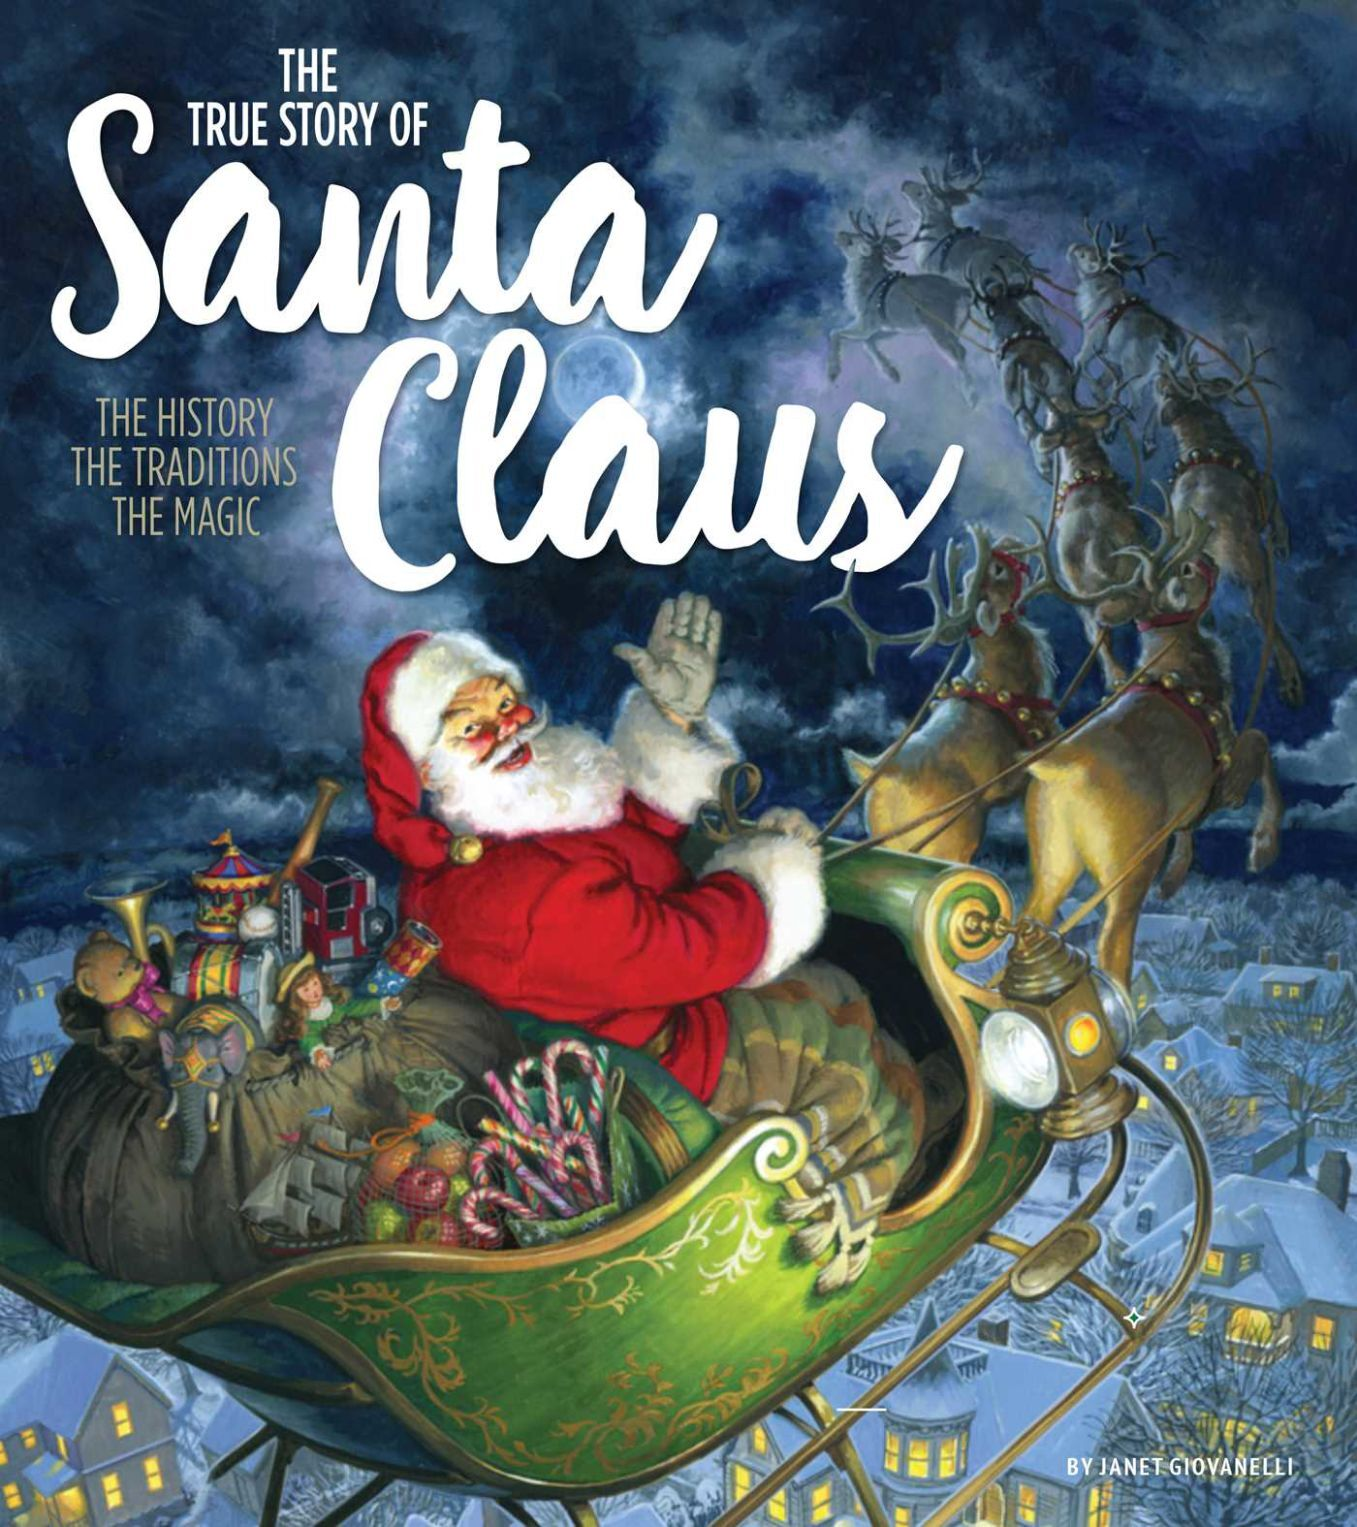 'The True Story of Santa Claus: The History, The Traditions, The Magic'